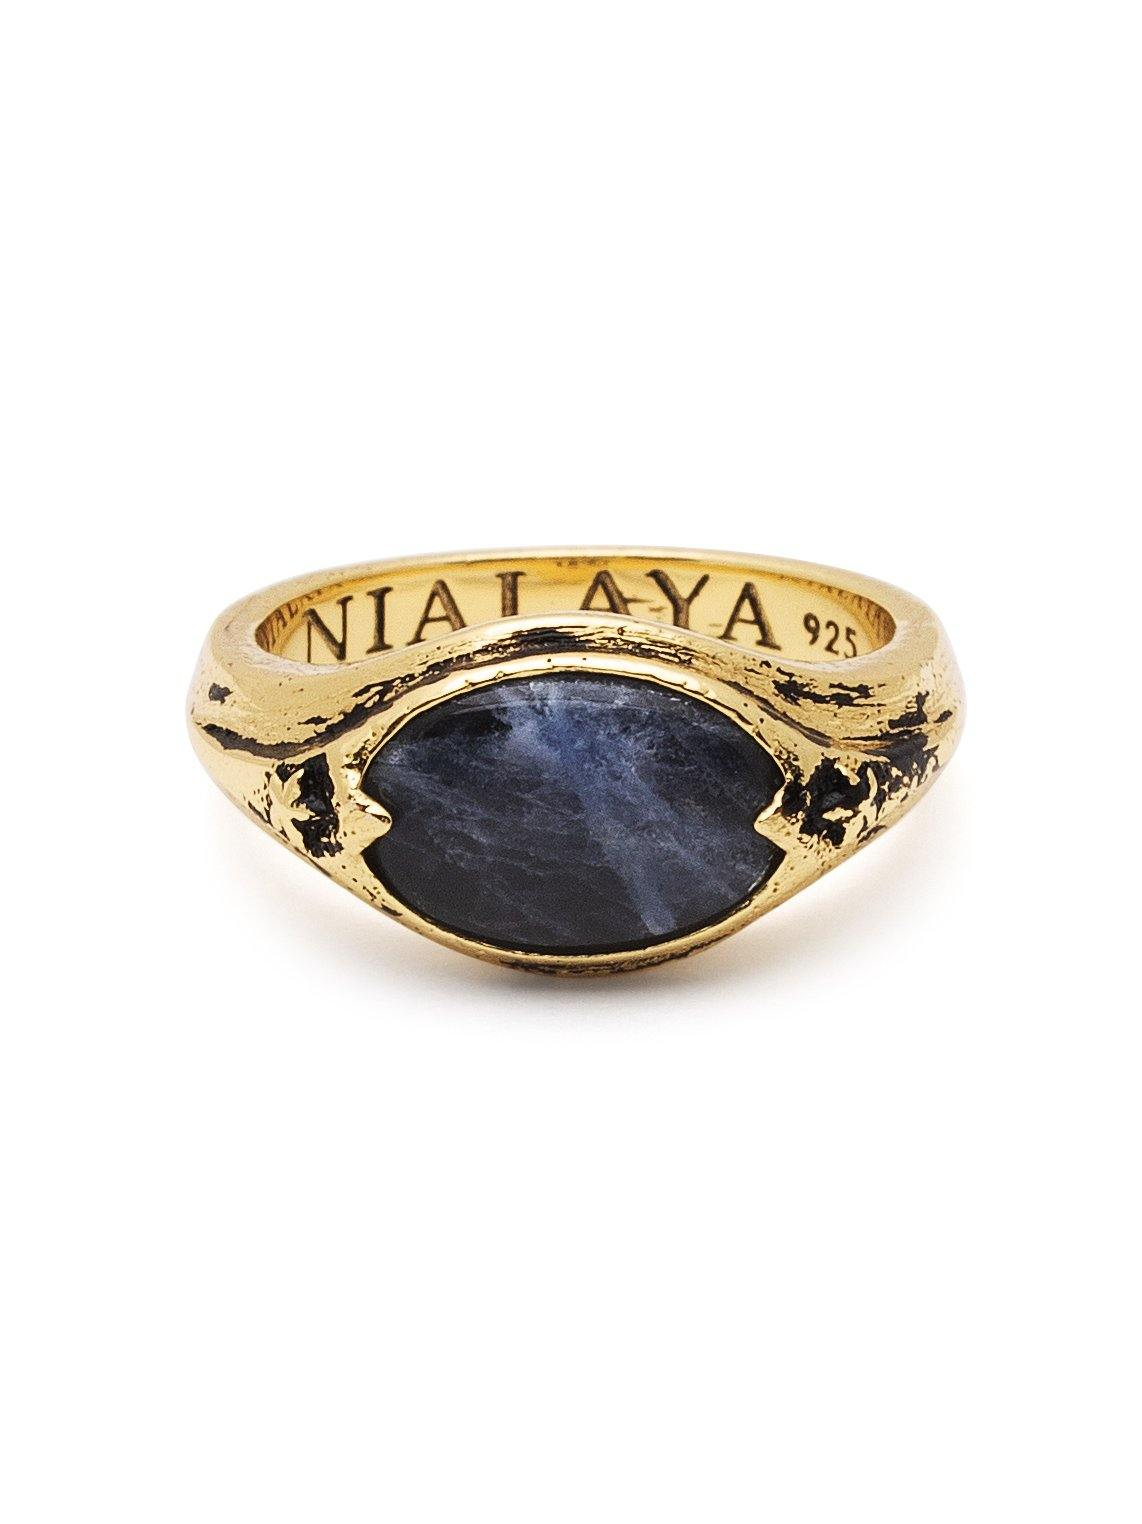 Men's Vintage Gold Signet Ring with Blue Dumortierite - Nialaya Jewelry